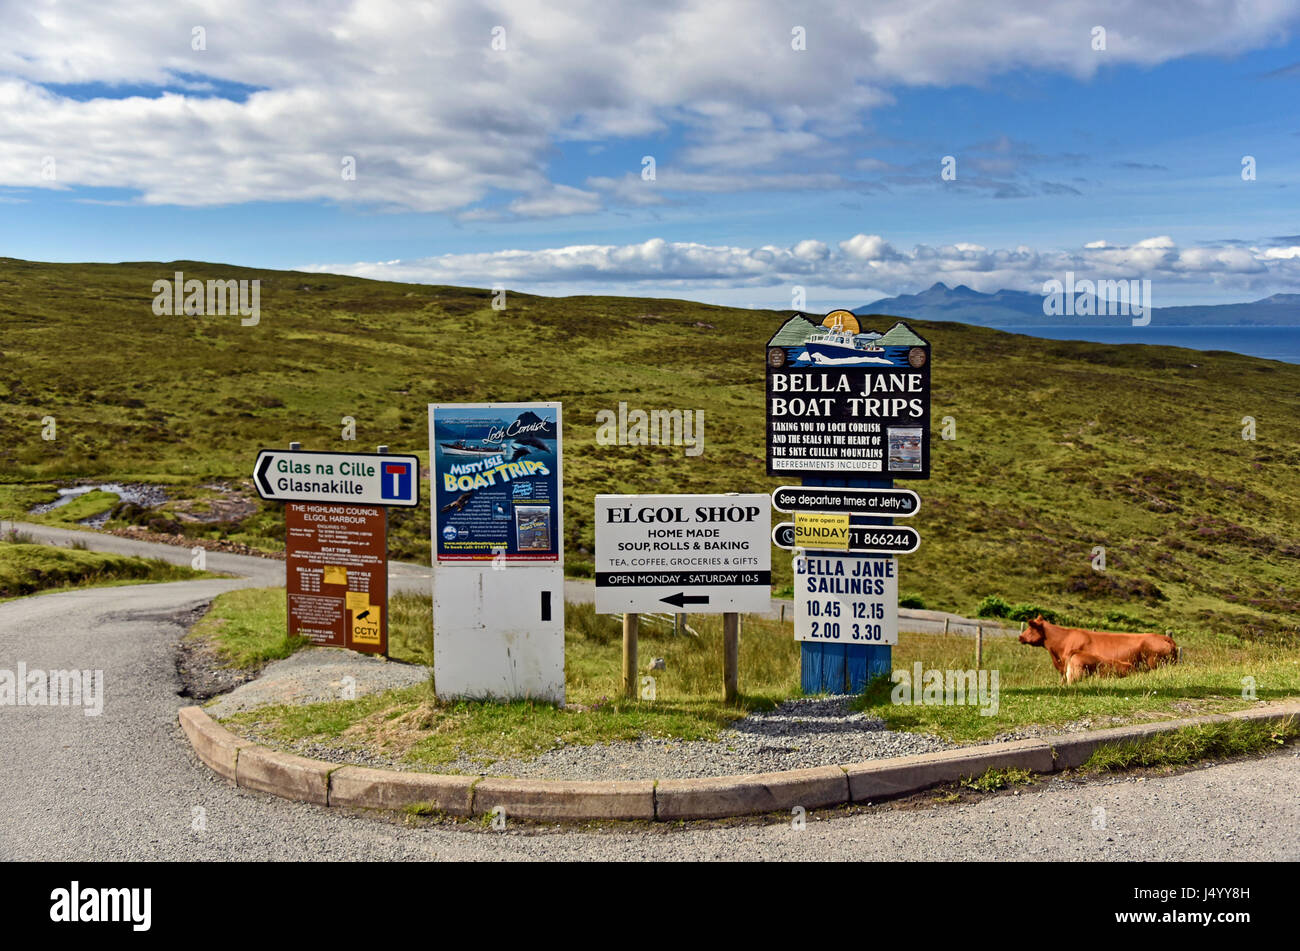 Advertising signboards. Elgol, Loch Scavaig, Strathaird, Isle of Skye, Highlands, Scotland, United Kingdom, Europe. - Stock Image